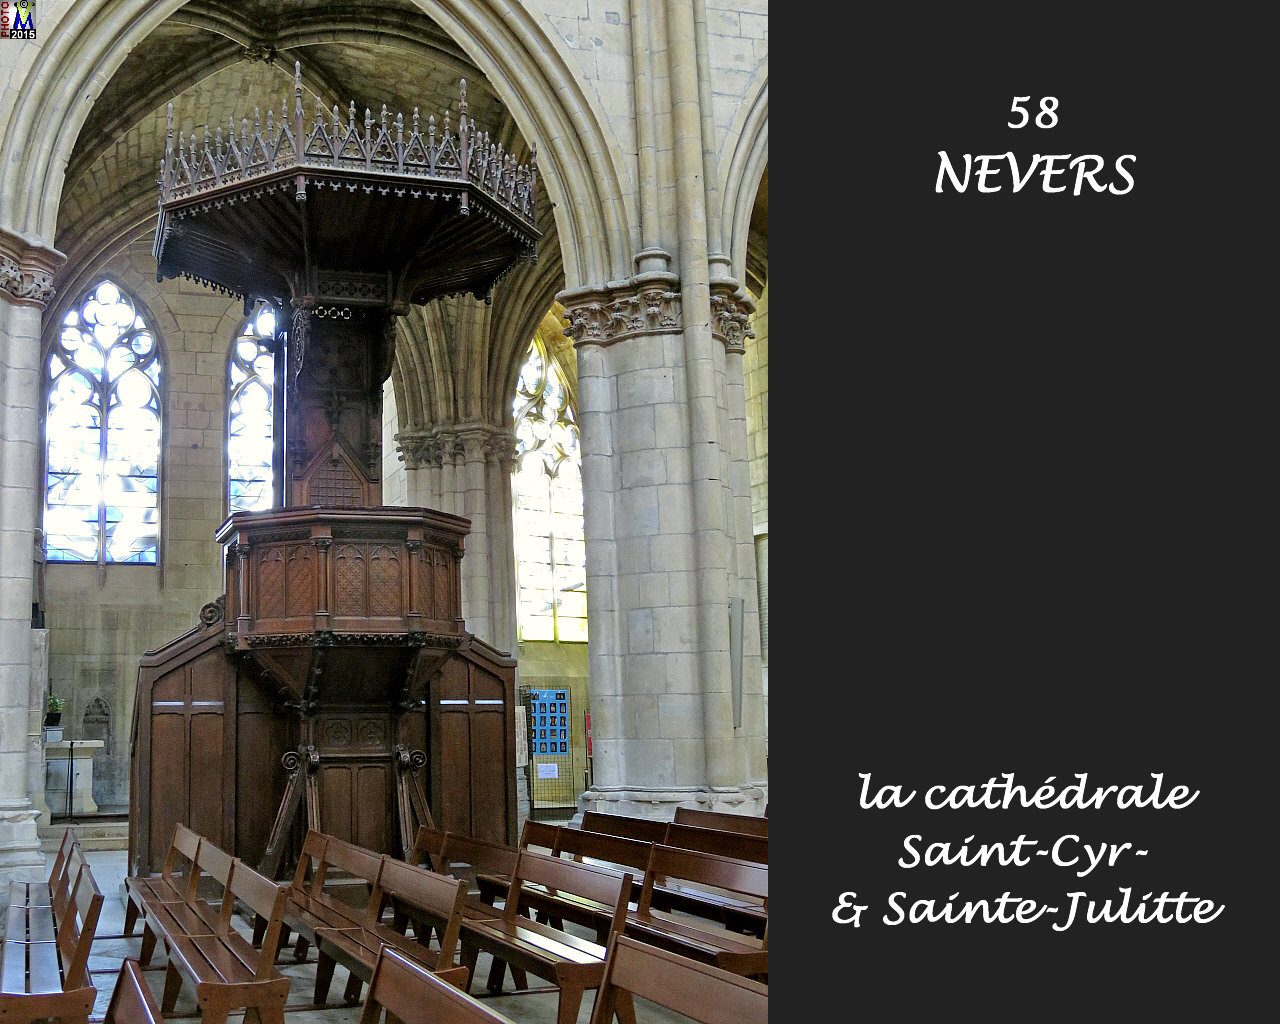 58NEVERS-cathedrale_266.jpg